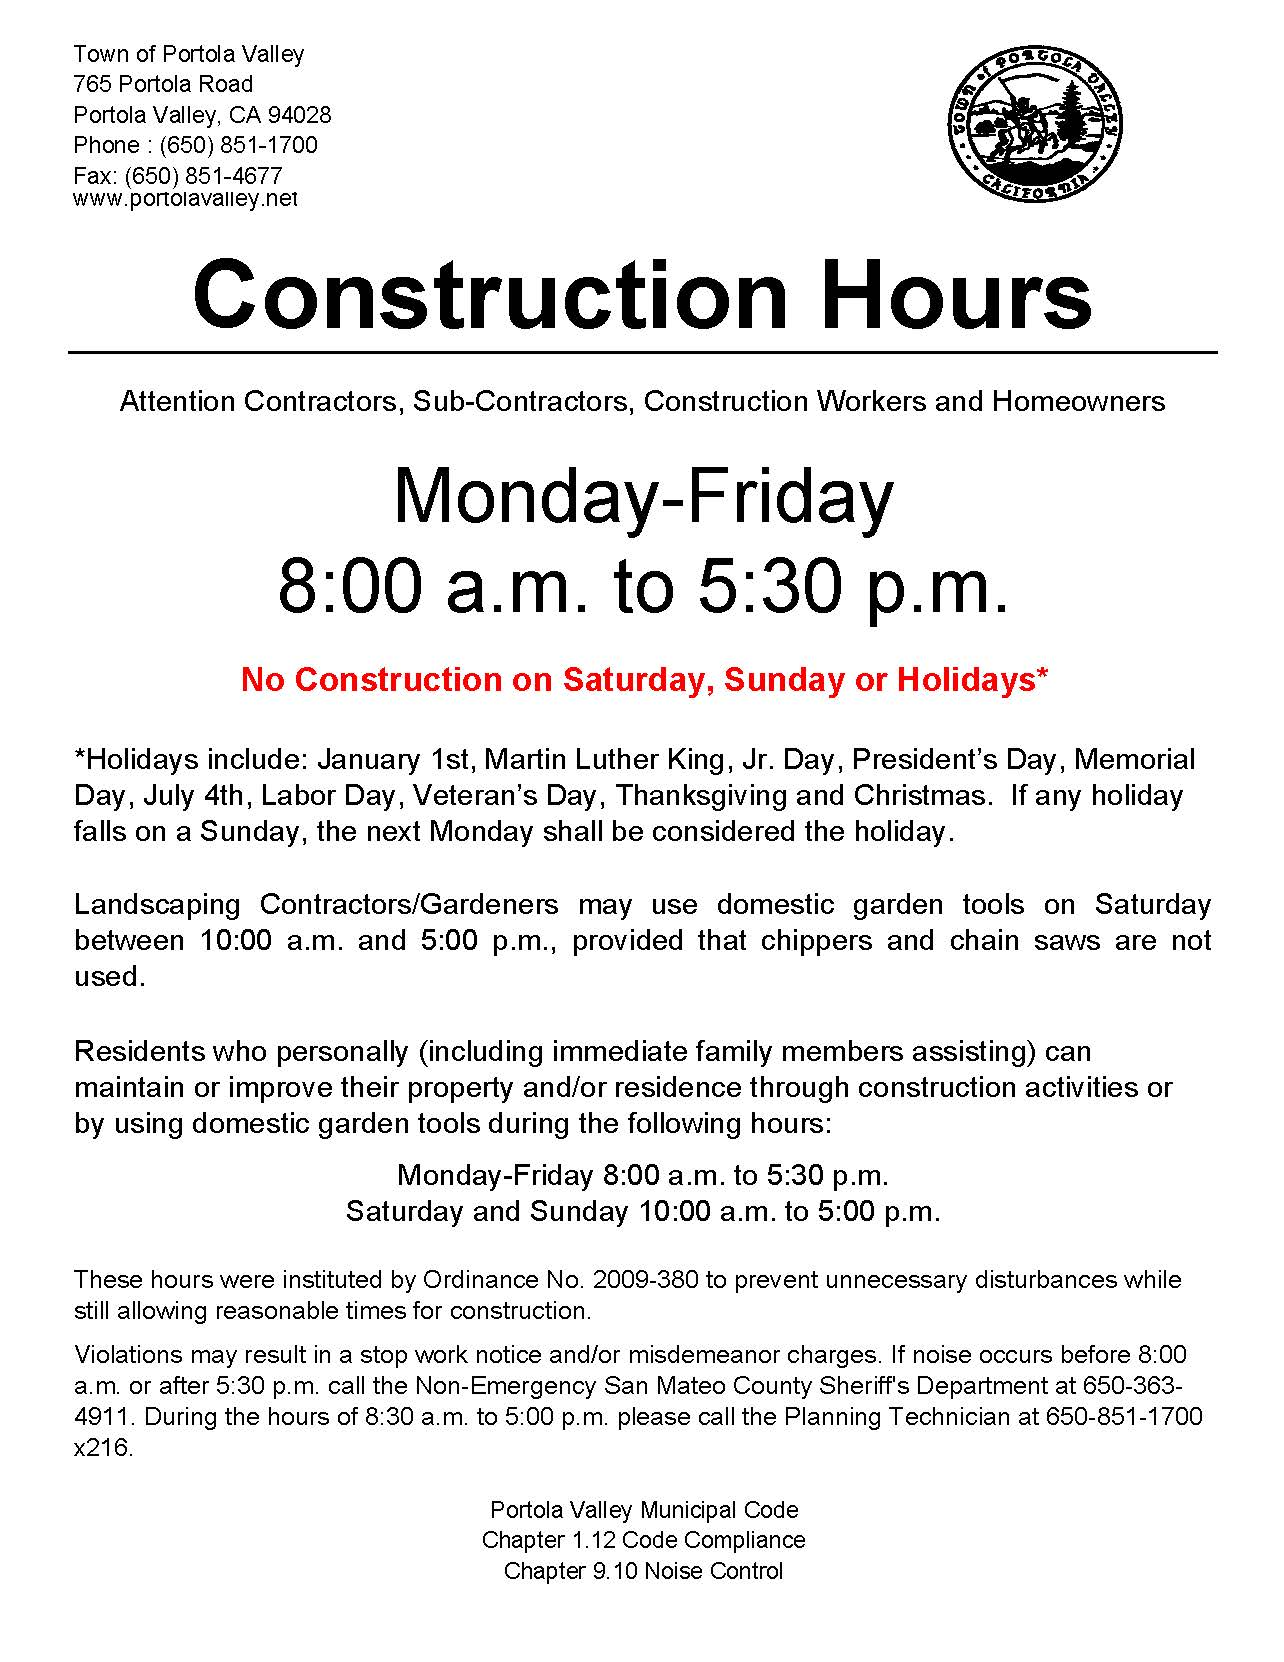 Construction and Landscaping Hours in Town   Portola Valley, CA